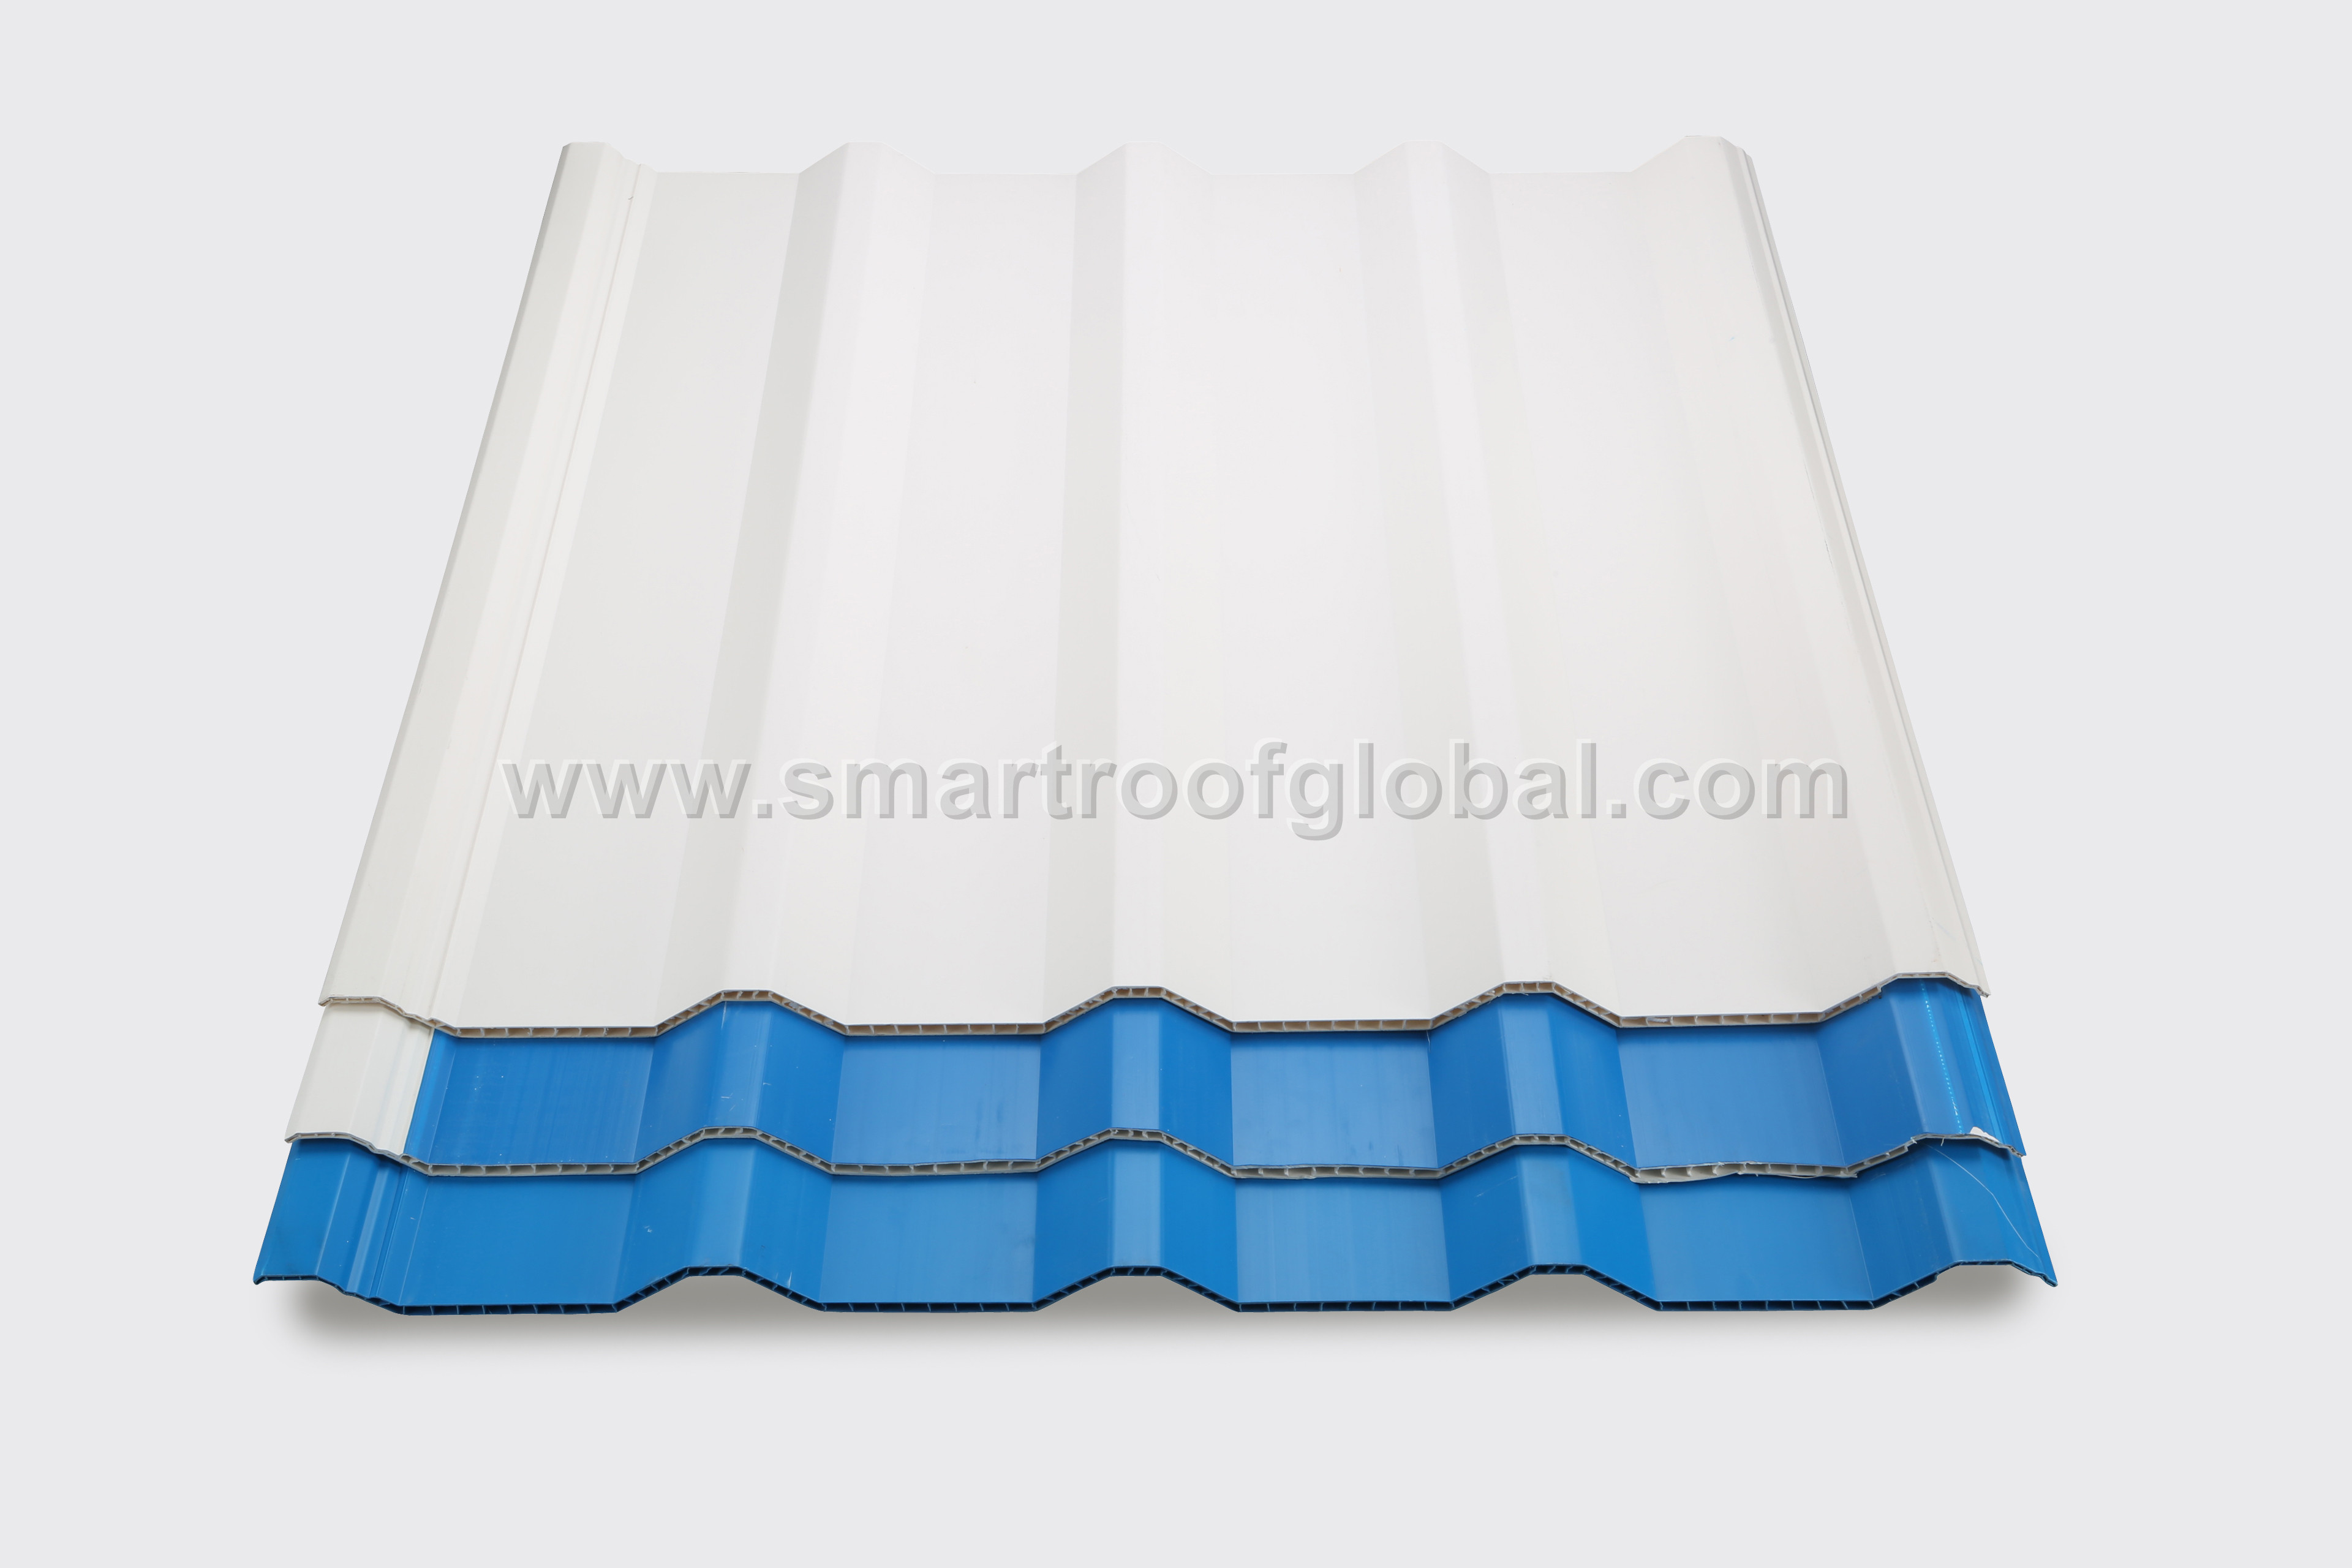 Polycarbonate Roof Panels Featured Image